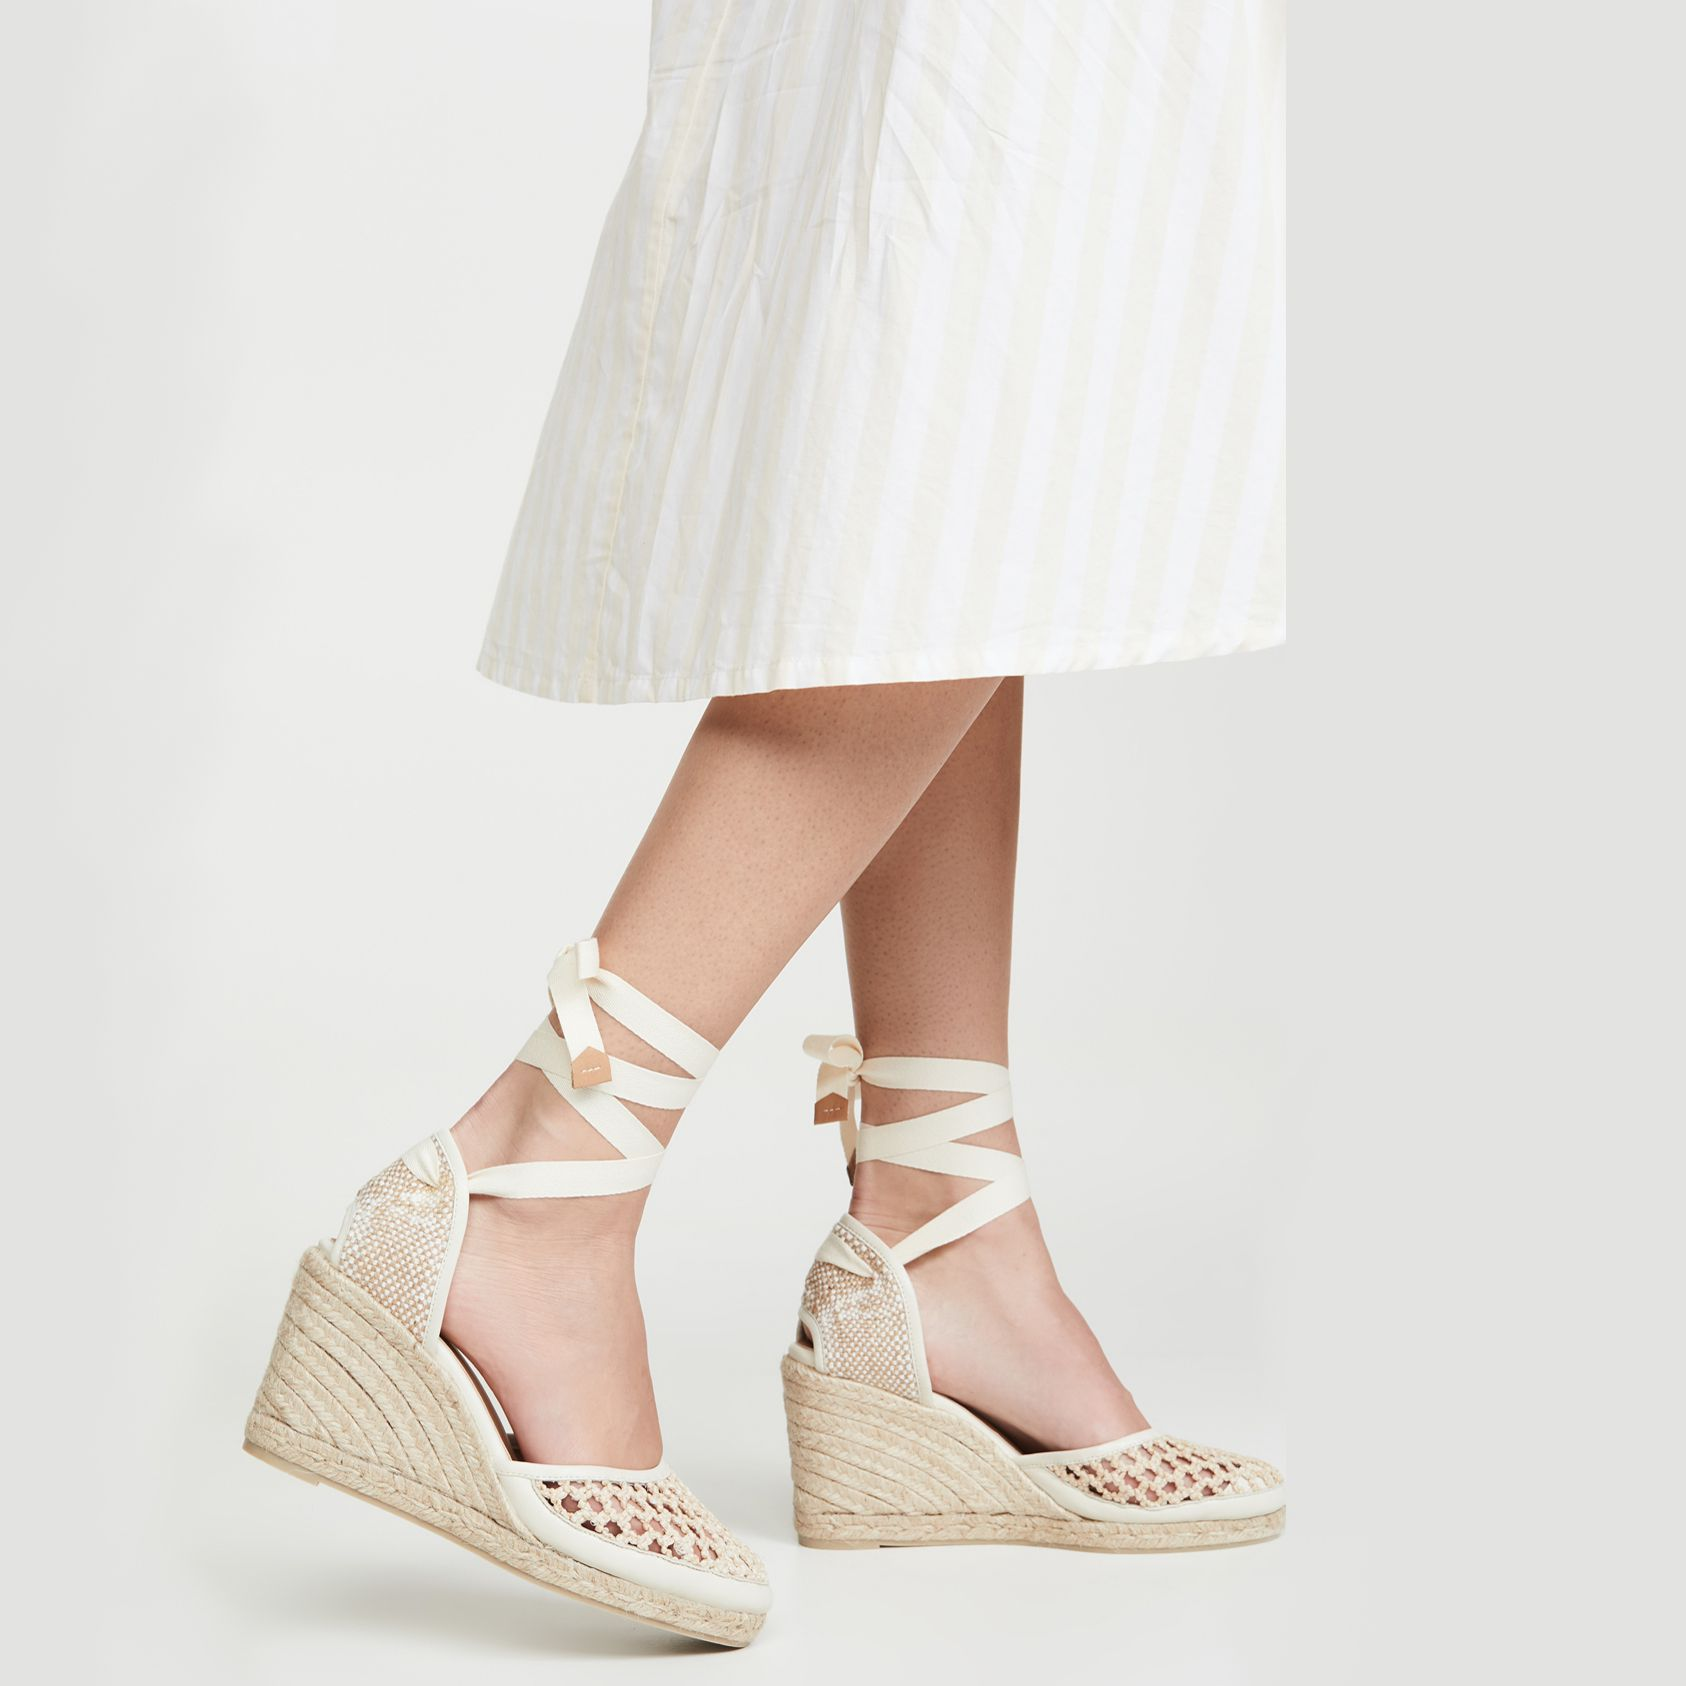 The 8 Best Wedding Wedges of 208